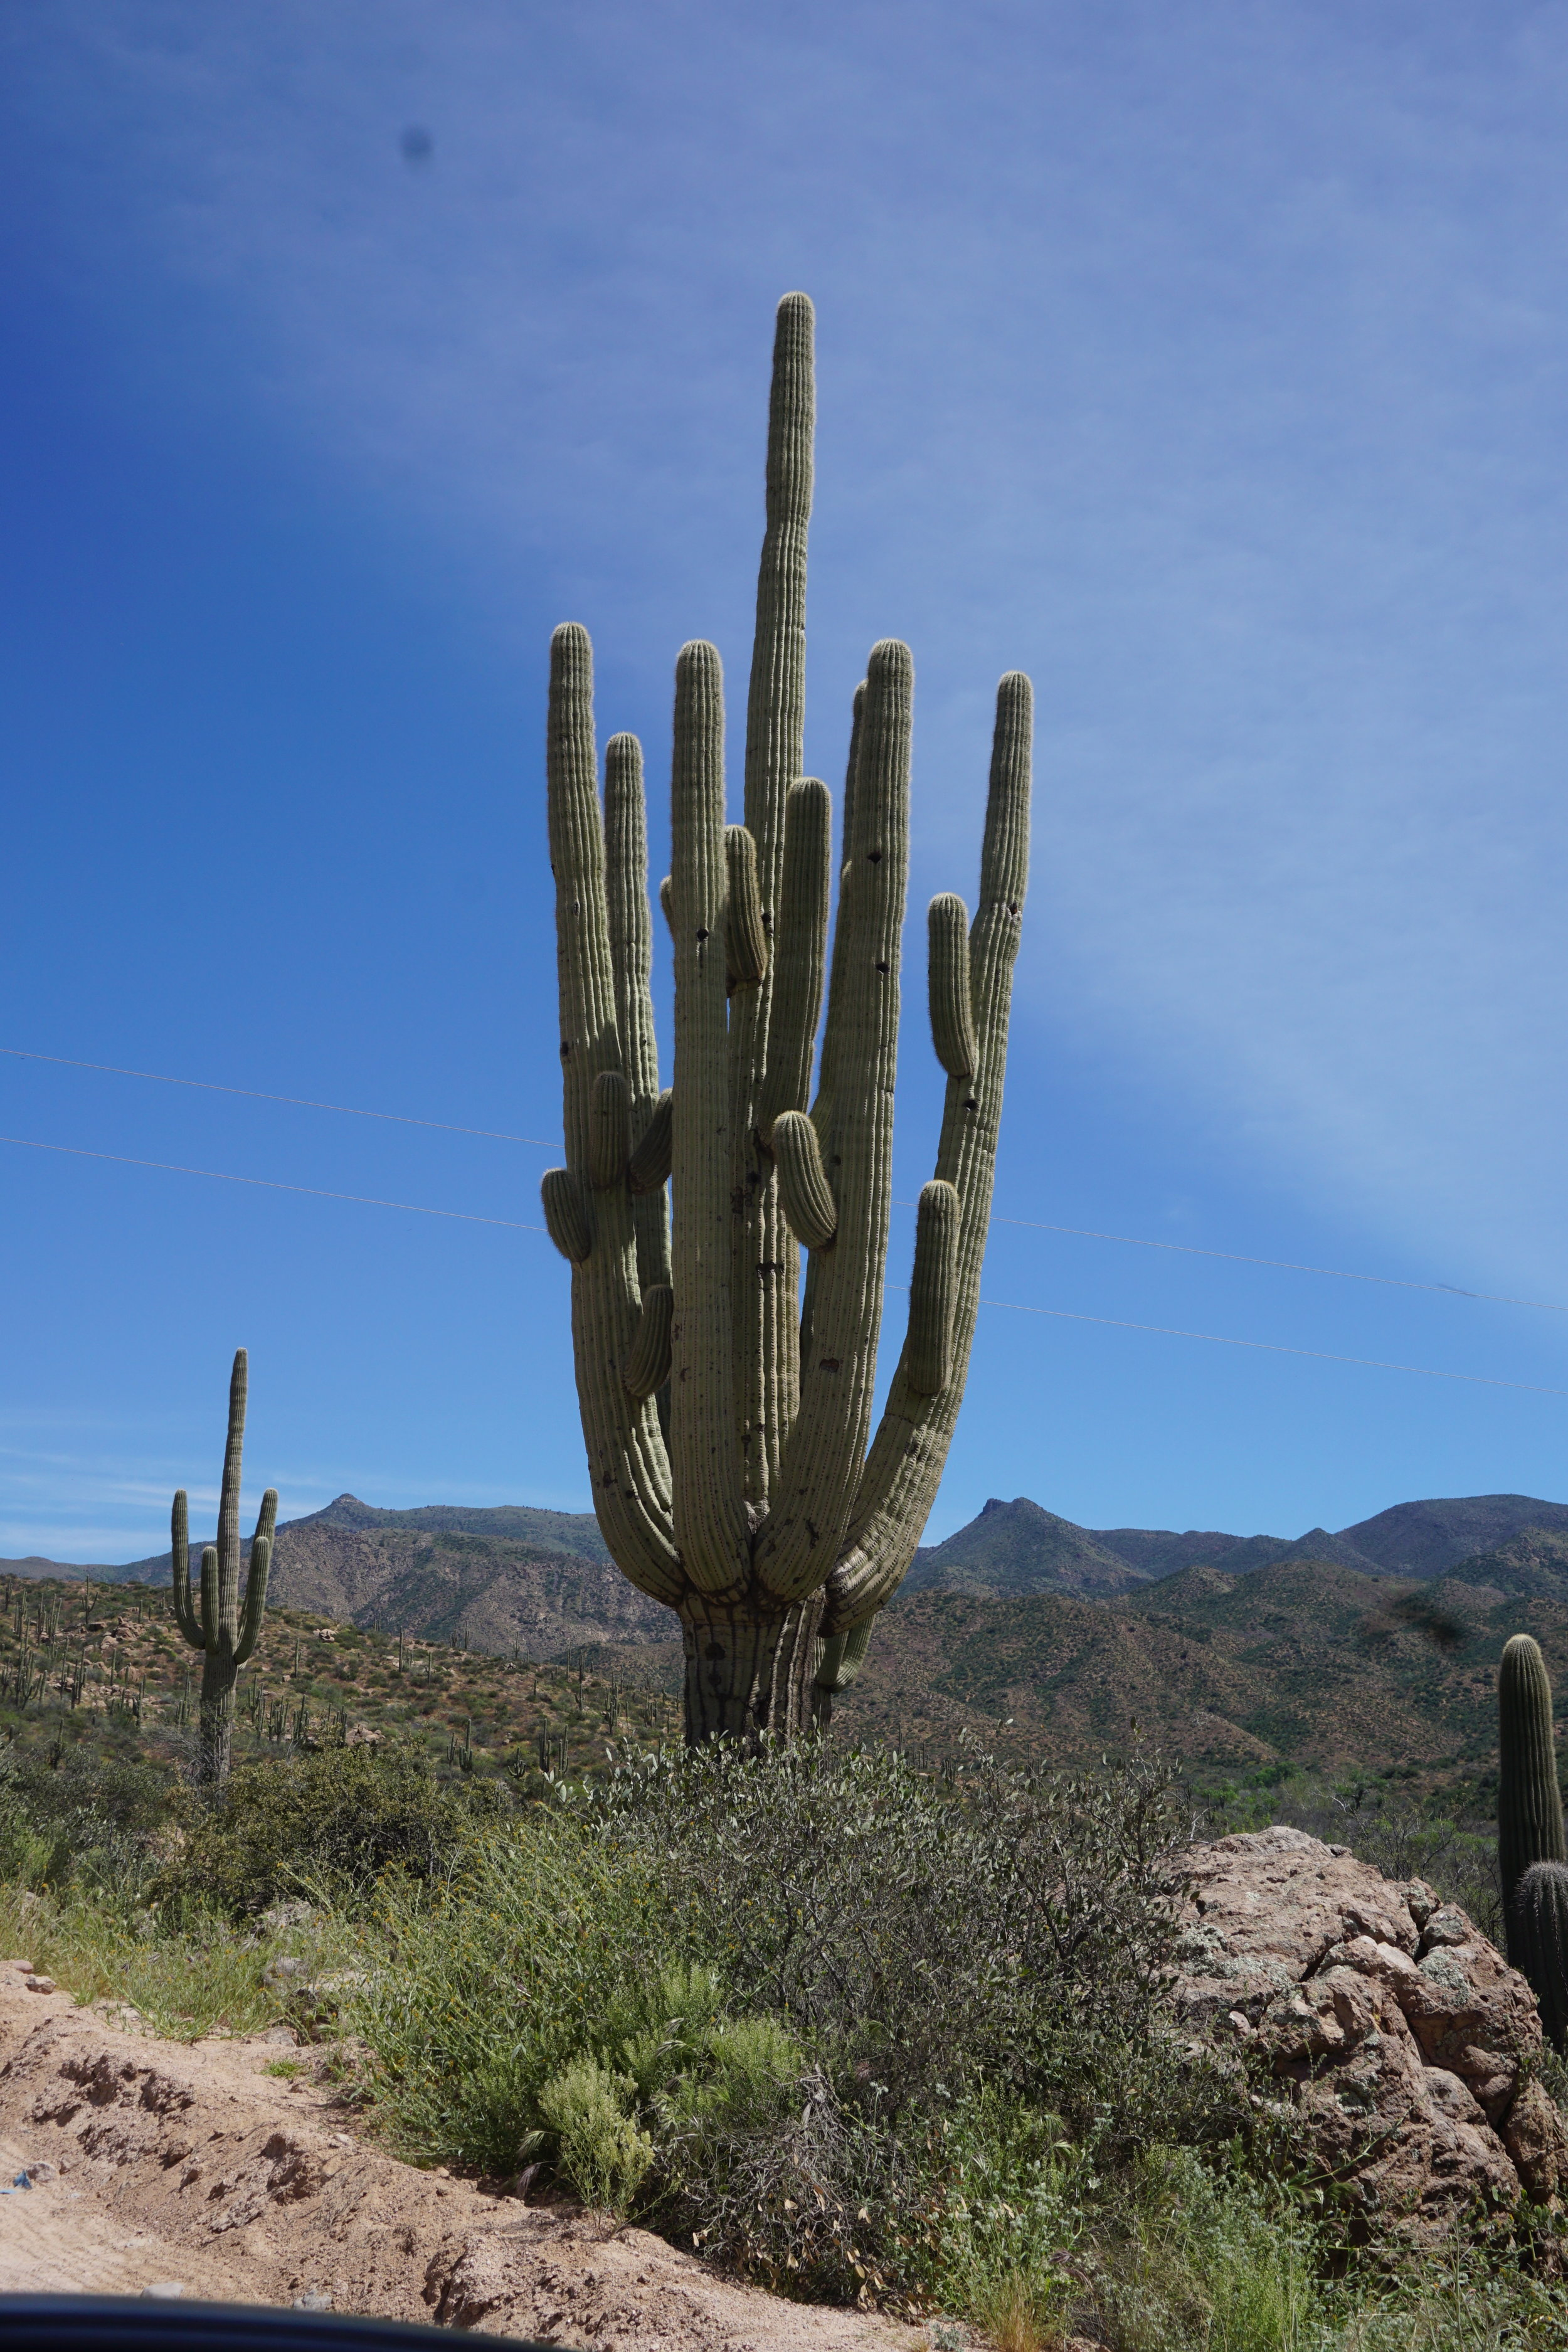 An organ pipe with LOTS of arms